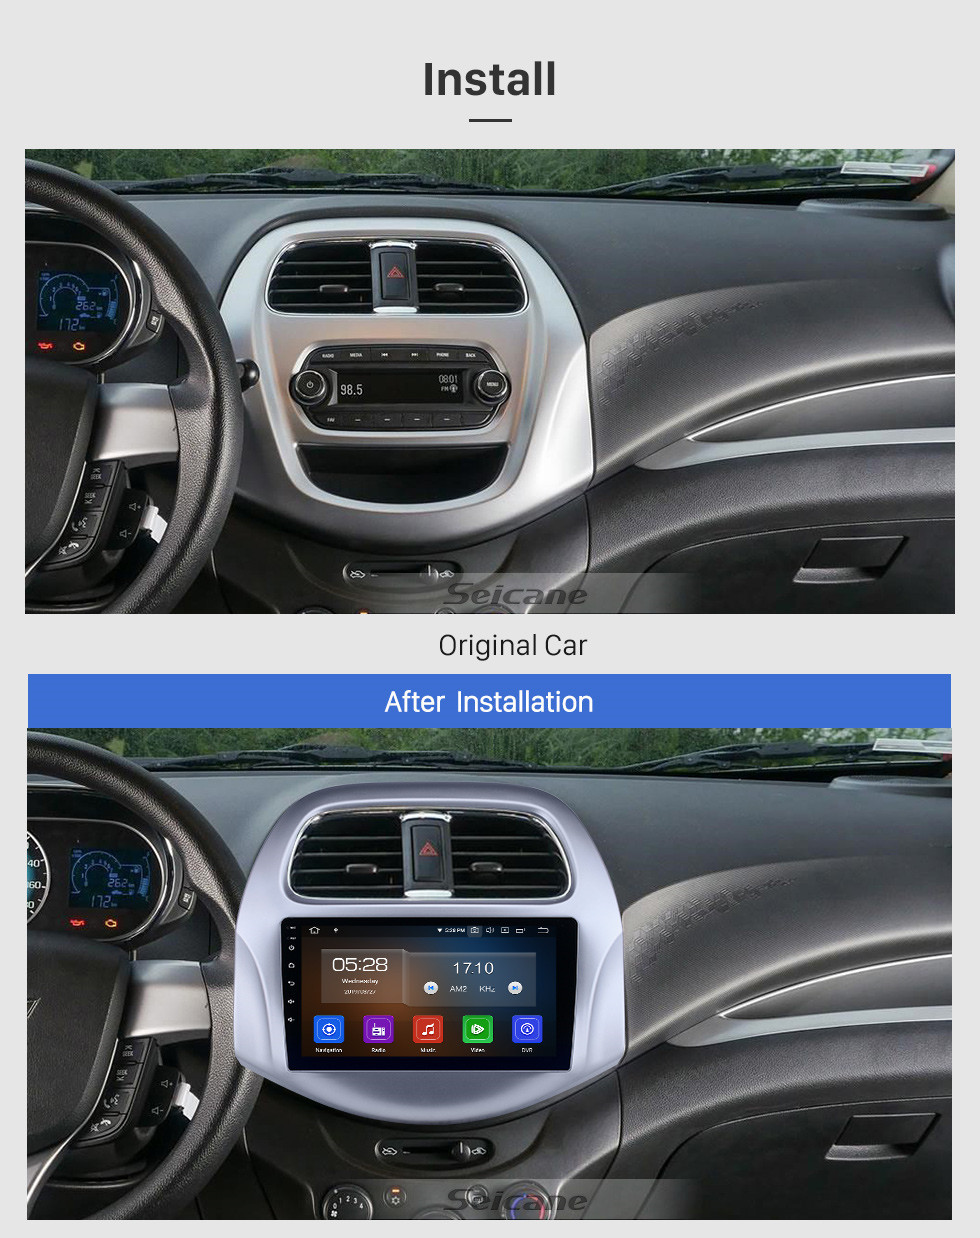 Seicane 2018-2019 chevy Chevrolet Daewoo Matiz/ Spark/ Baic/ Beat Touchscreen Android 10.0 9 inch GPS Navigation Radio USB Bluetooth Carplay AUX support DVR OBD2